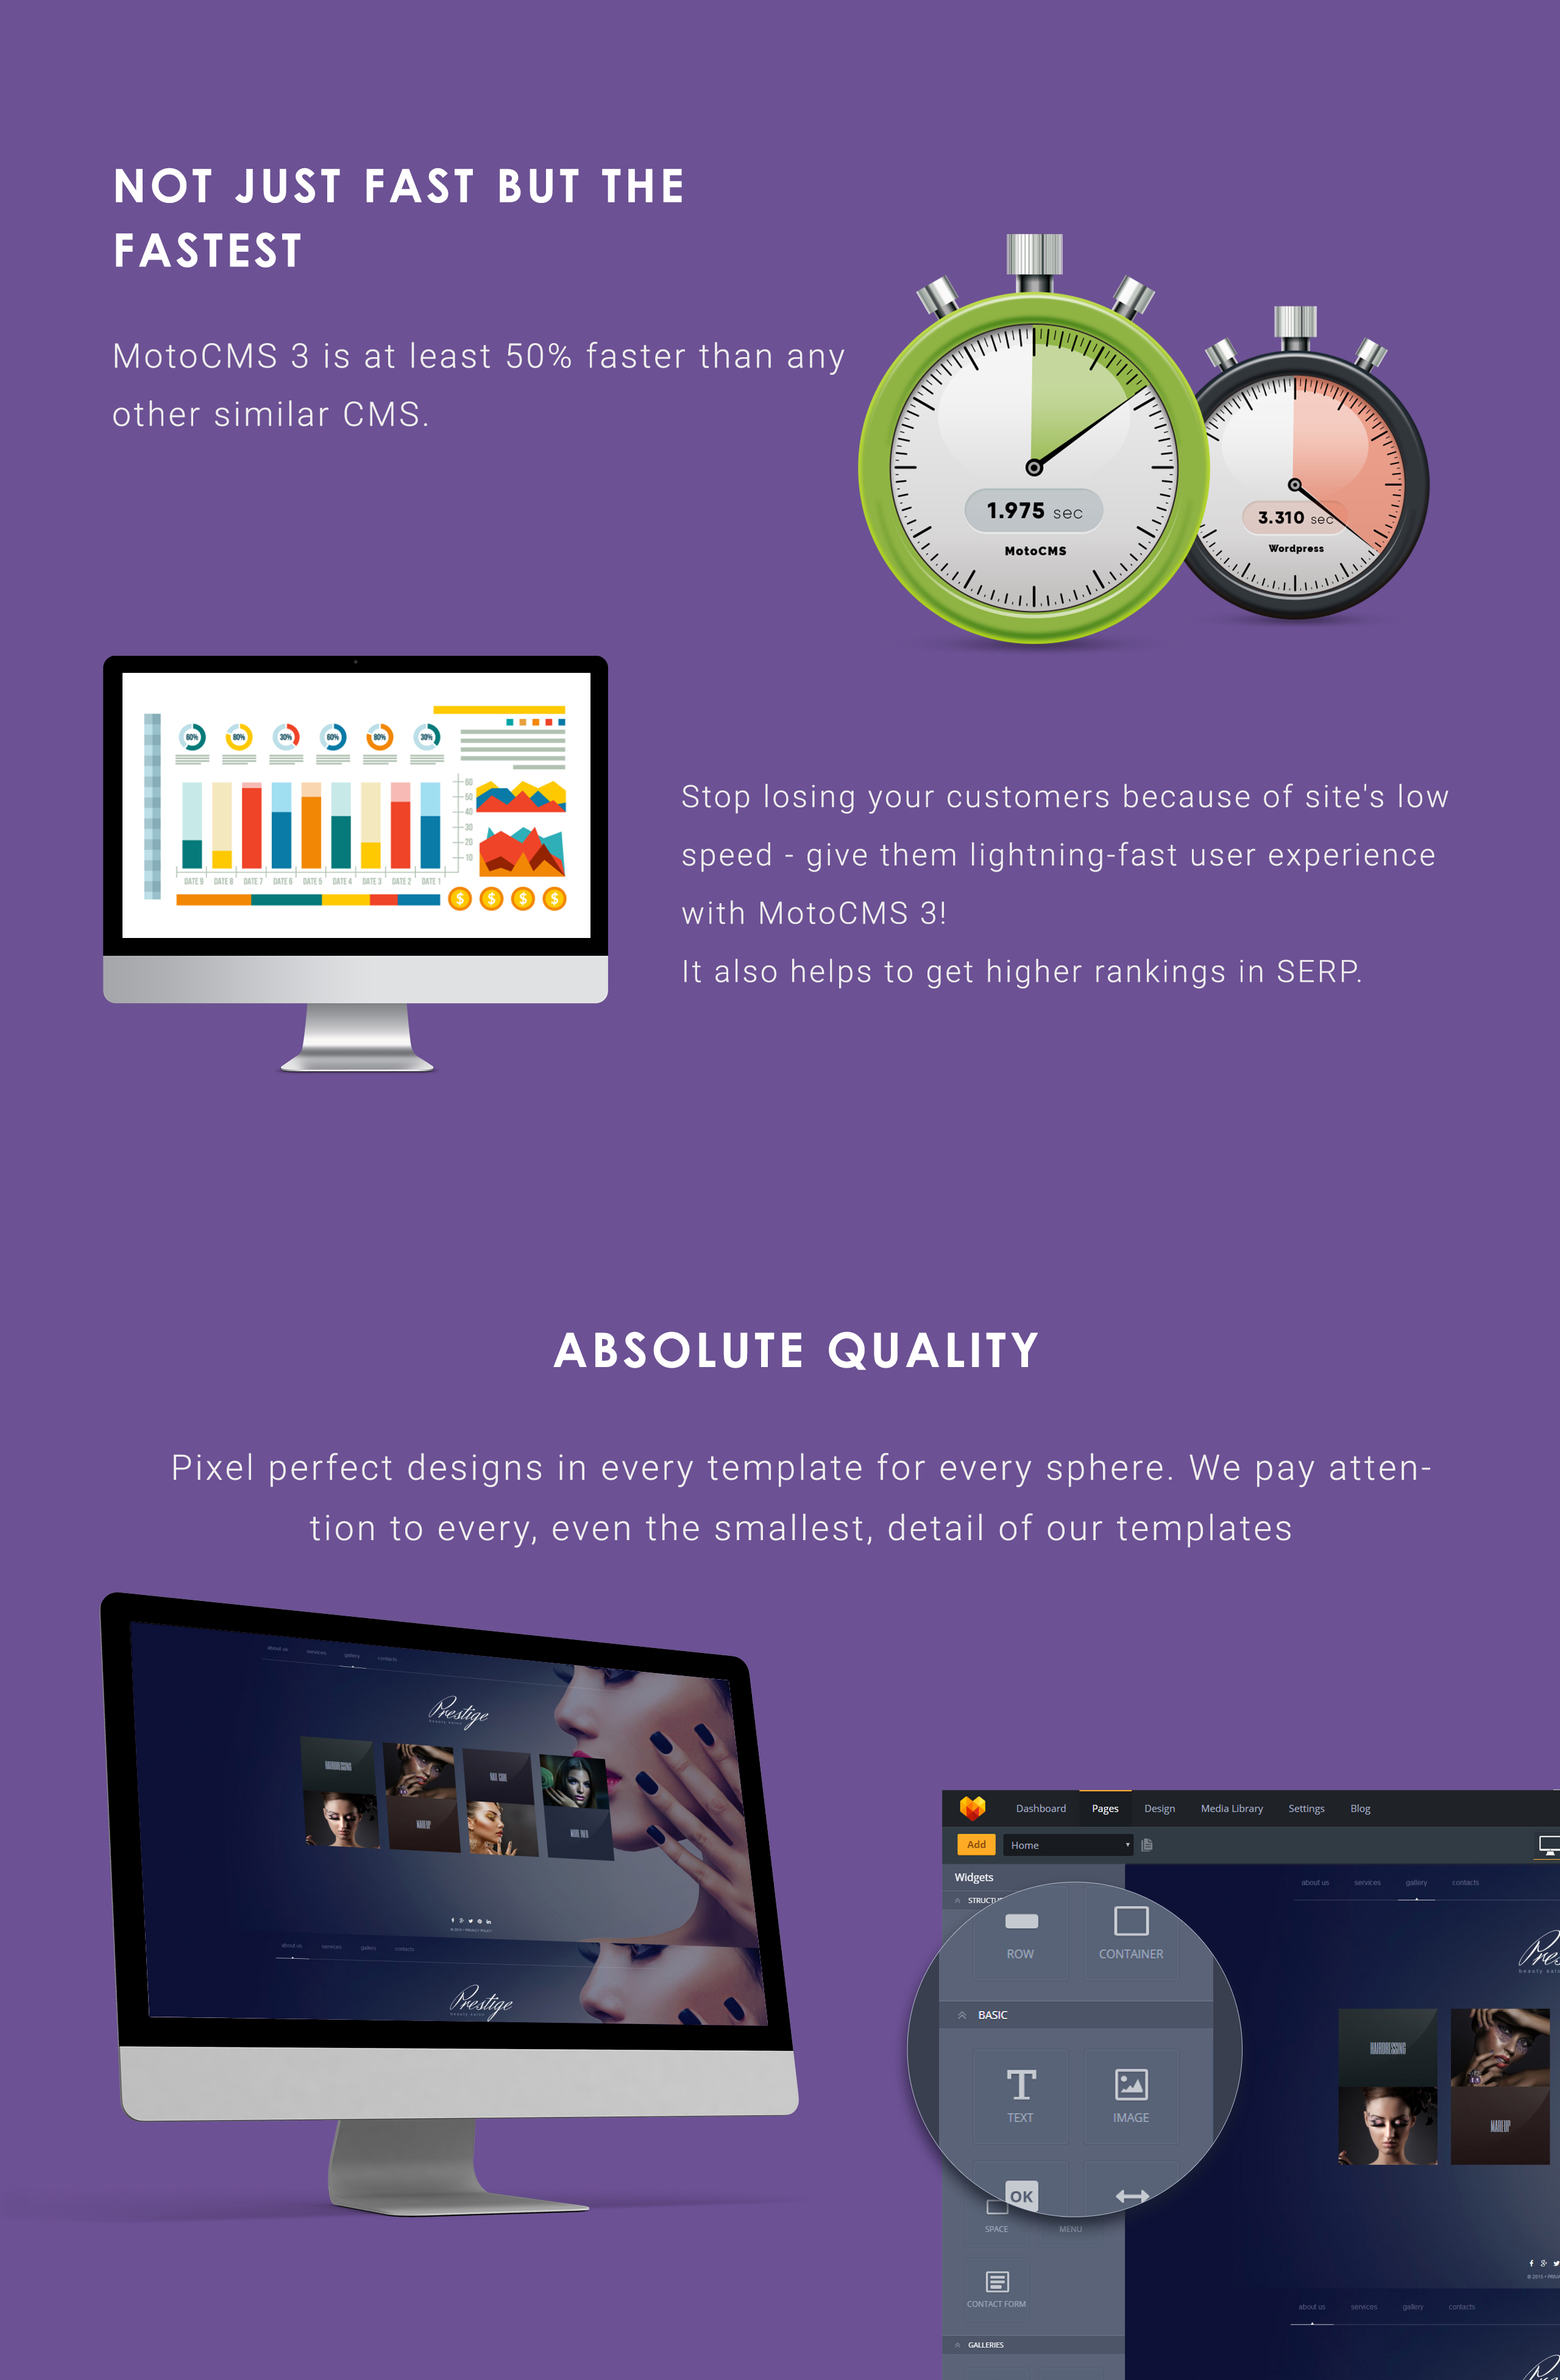 Prestige - Beauty Salon Moto CMS 3 Template